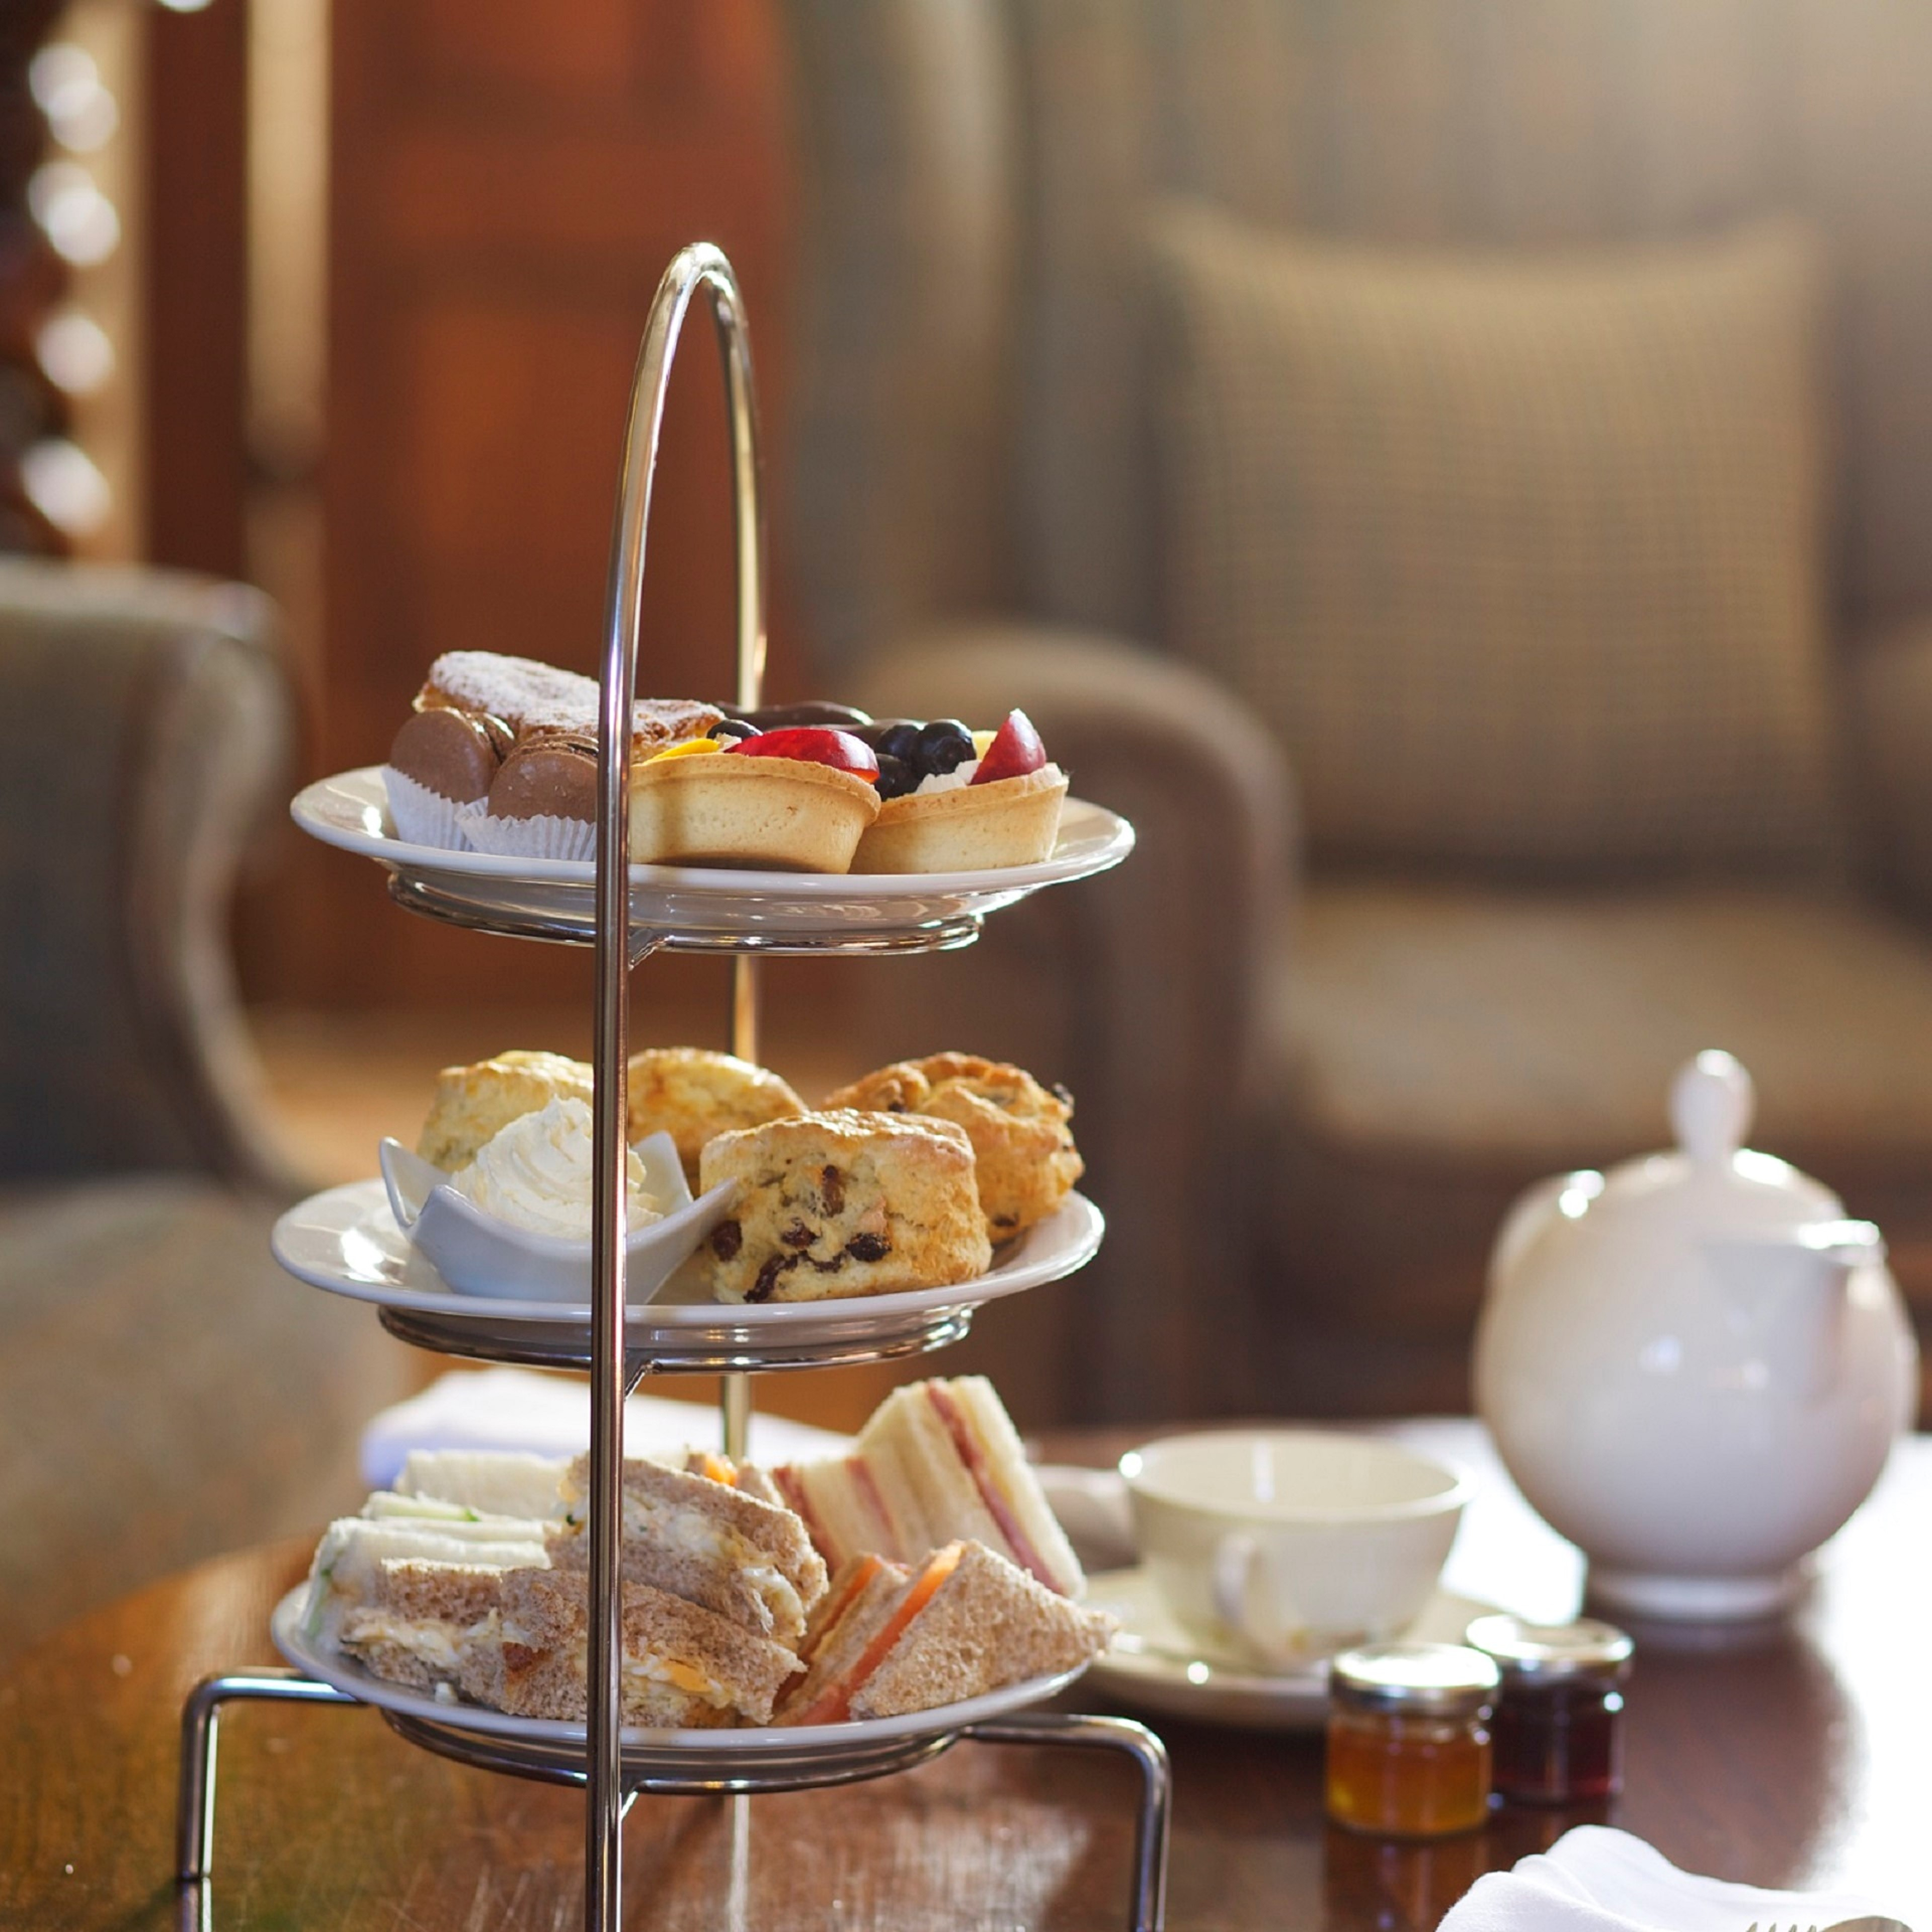 Spa Afternoon Tea Experience